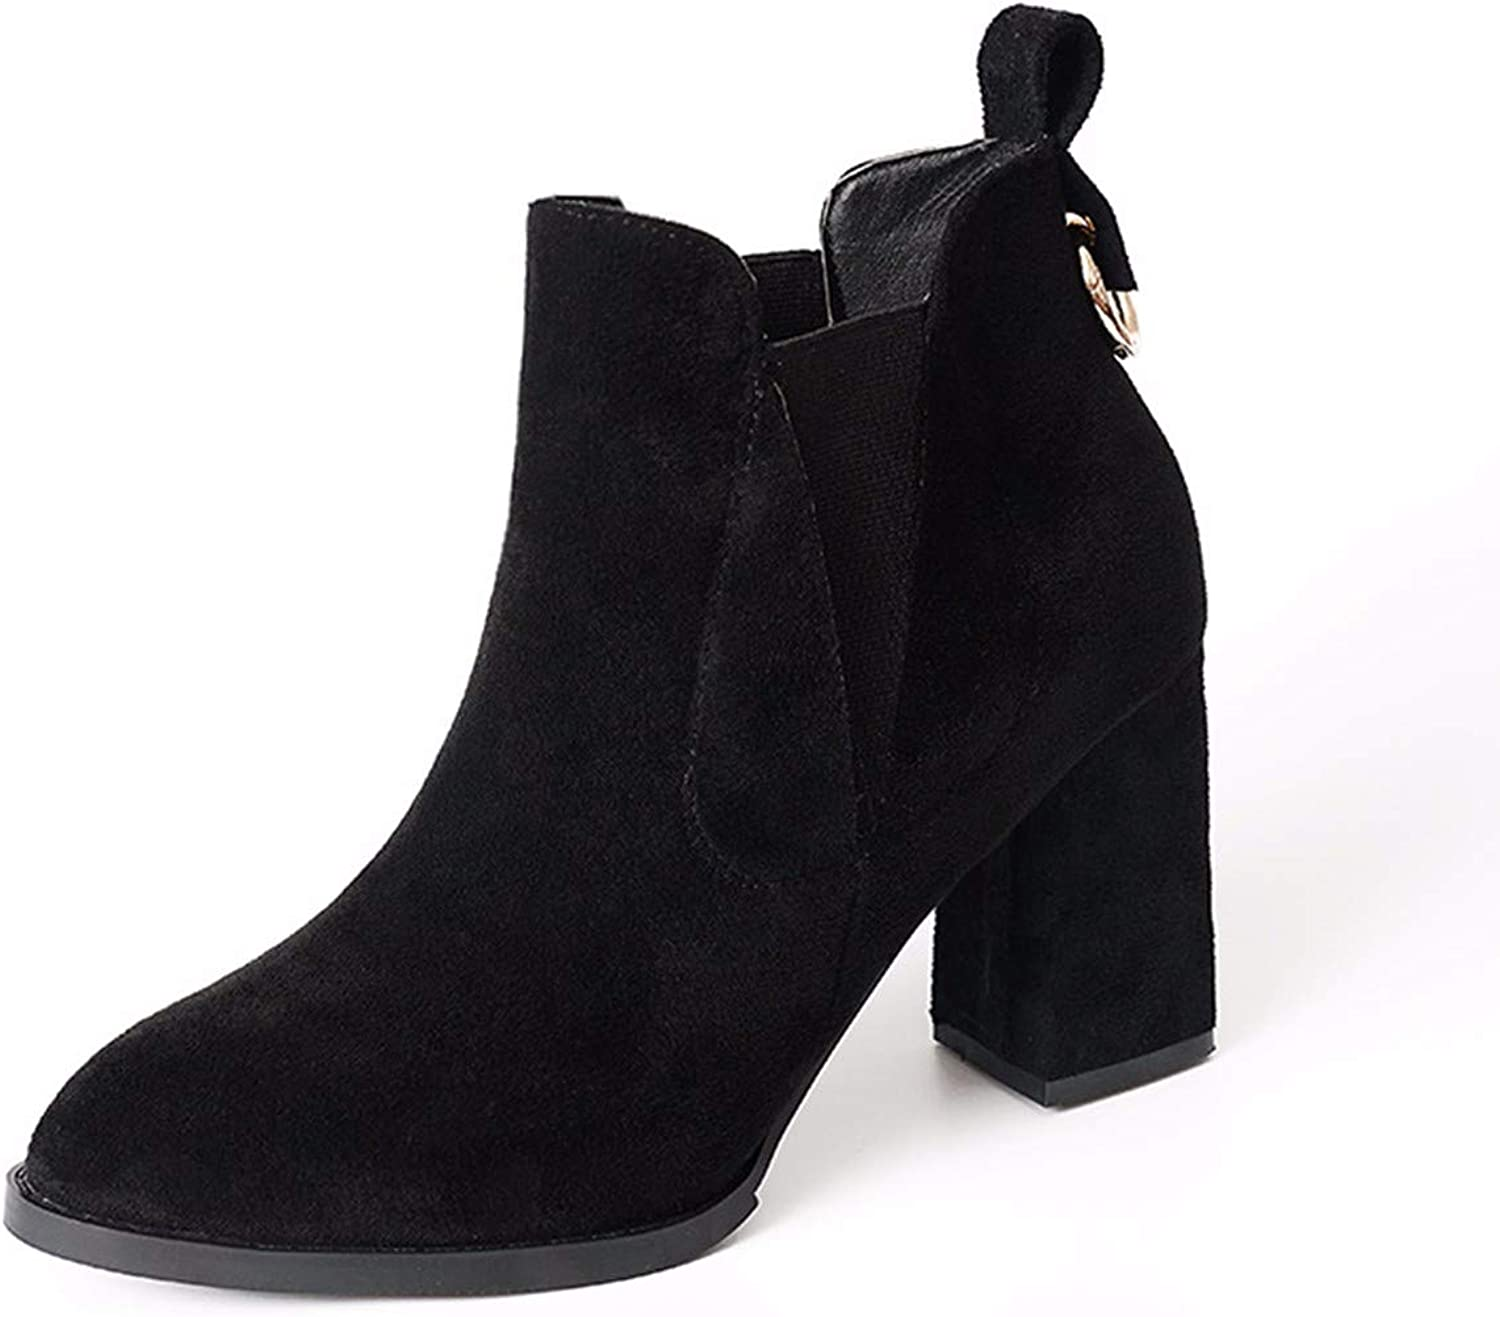 QPGGP-boots High and Short Boots, Autumn and Winter, European and American Pointed Women's Heels, High Heels, Short Boots, Elastic Sleeve Women's Boots.